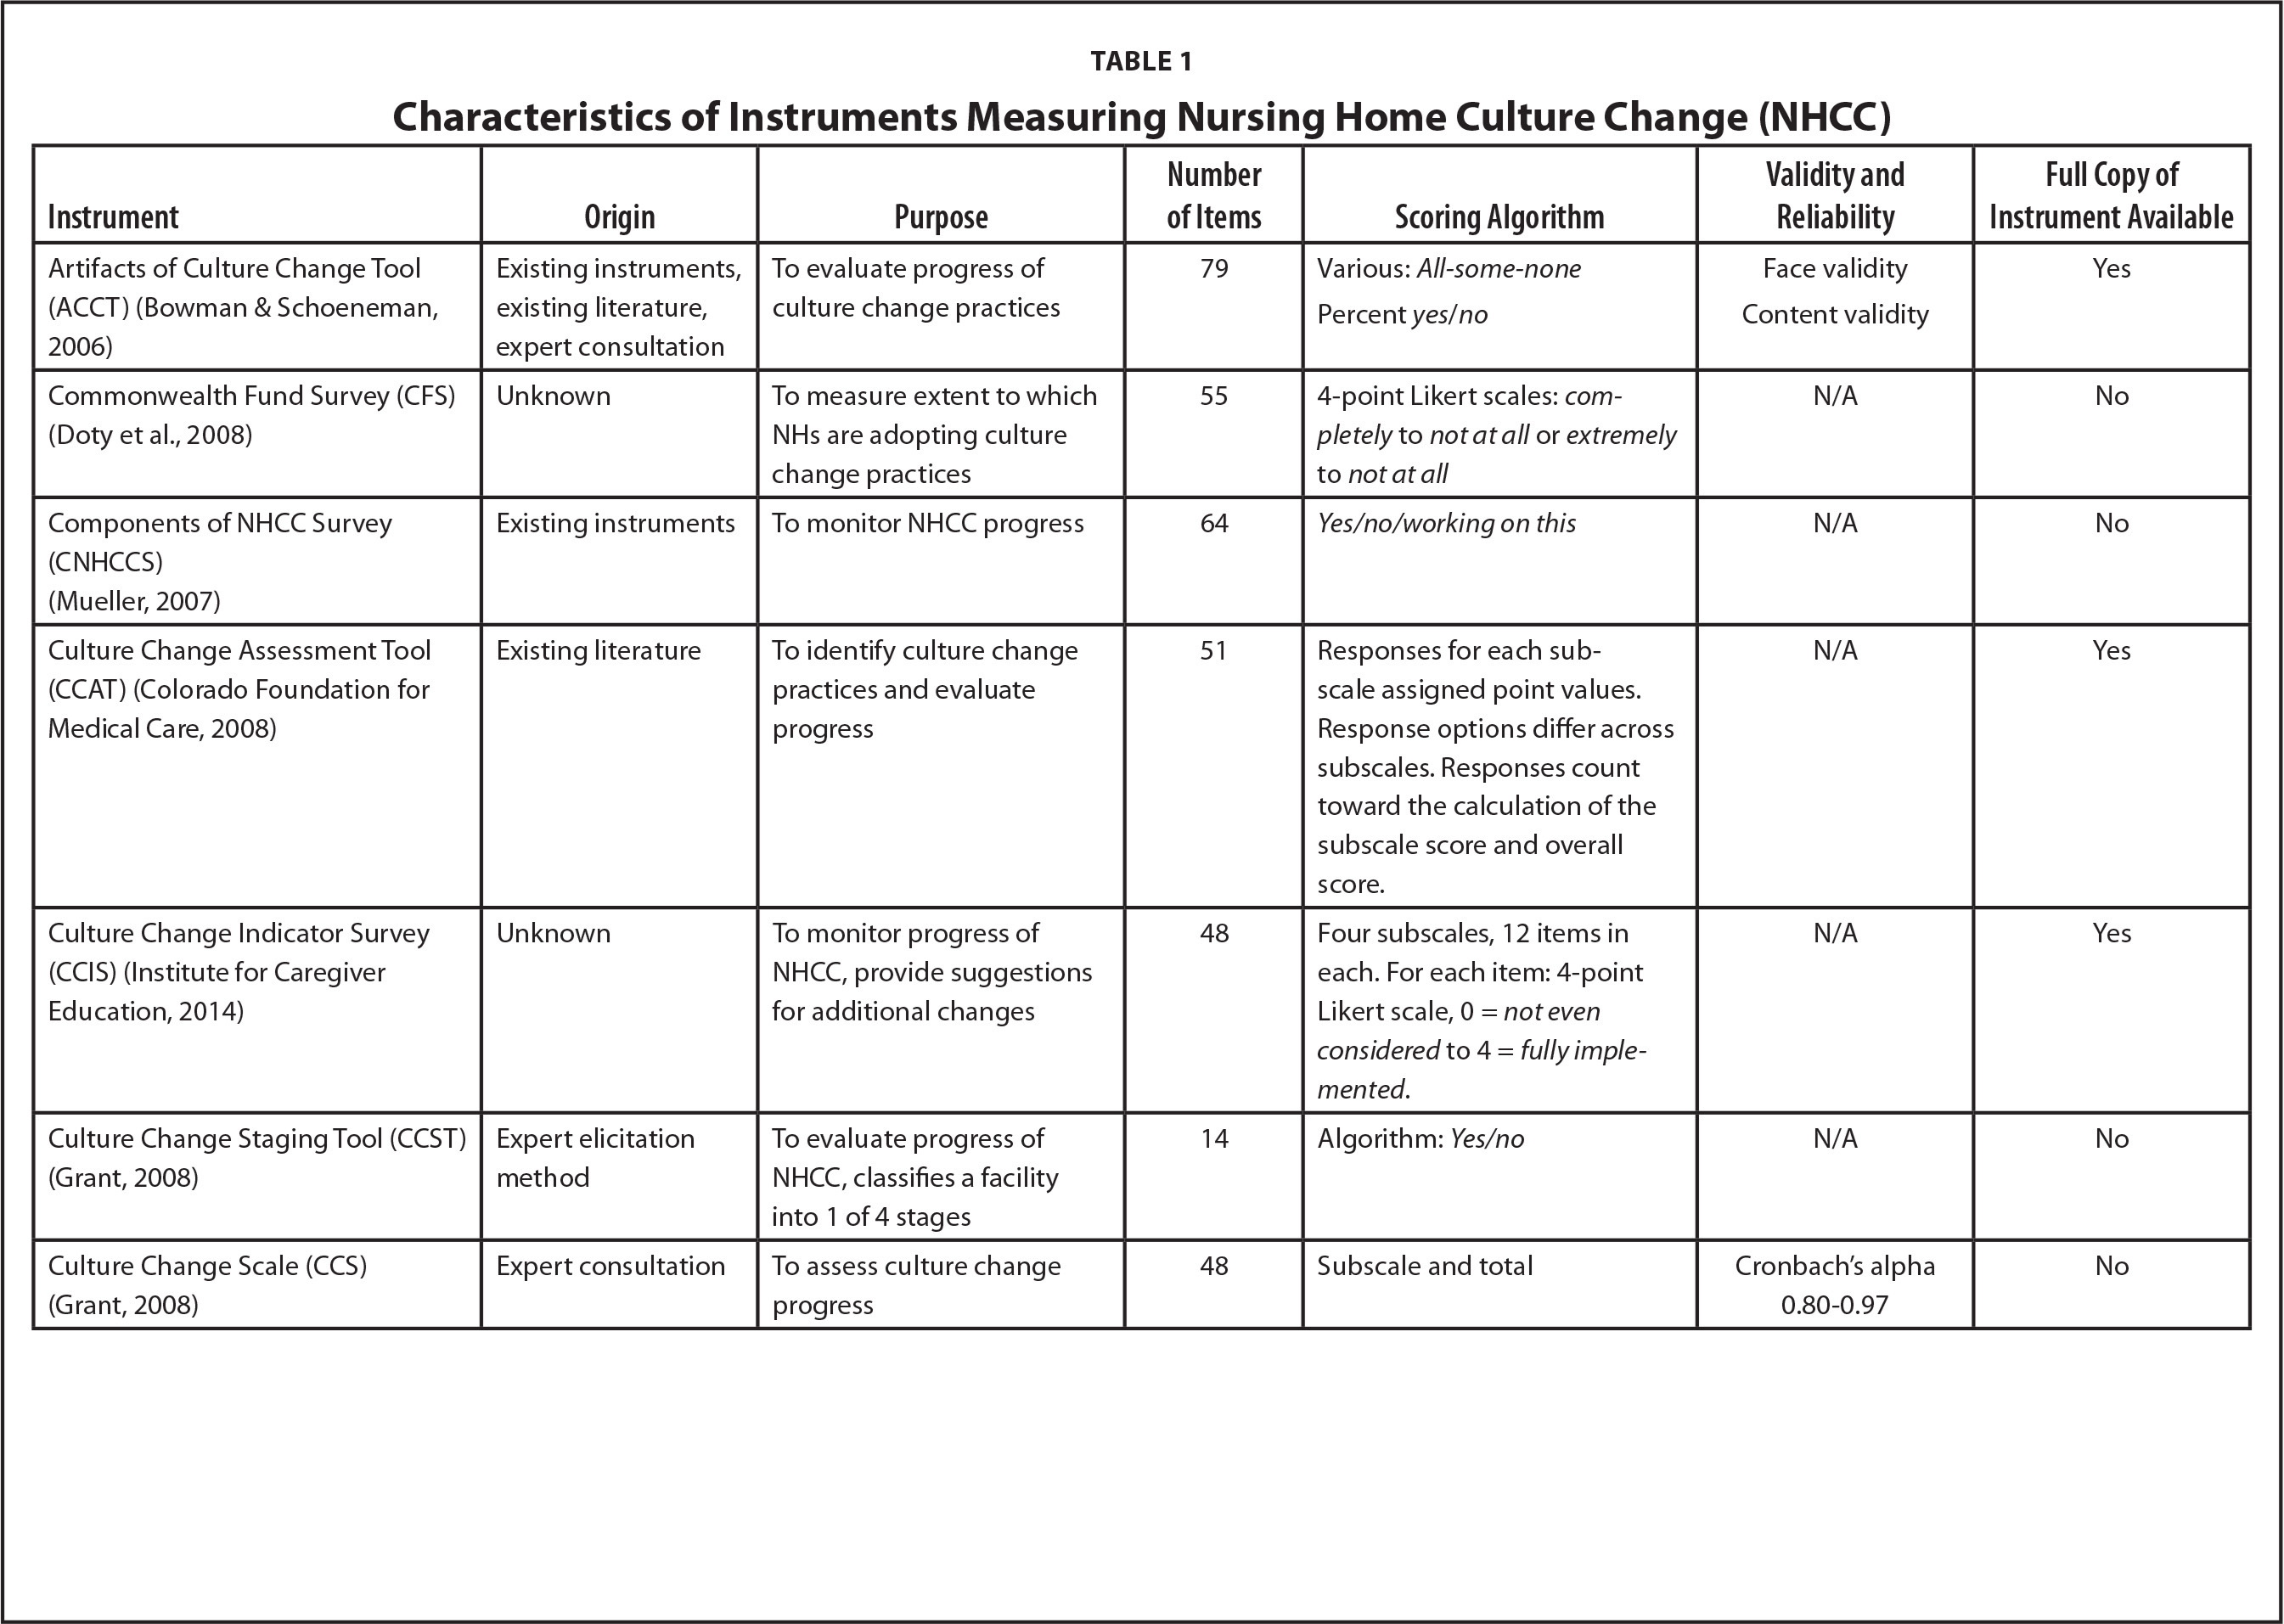 Characteristics of Instruments Measuring Nursing Home Culture Change (NHCC)